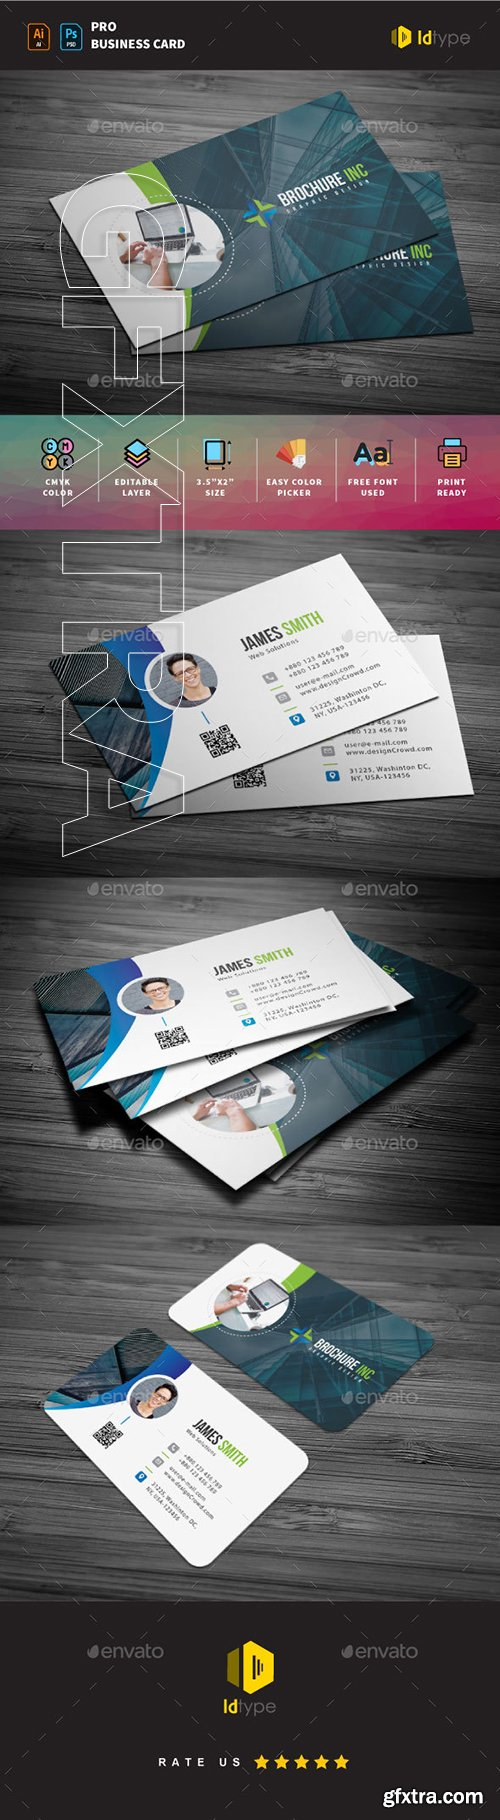 GraphicRiver - Business Card 22852086